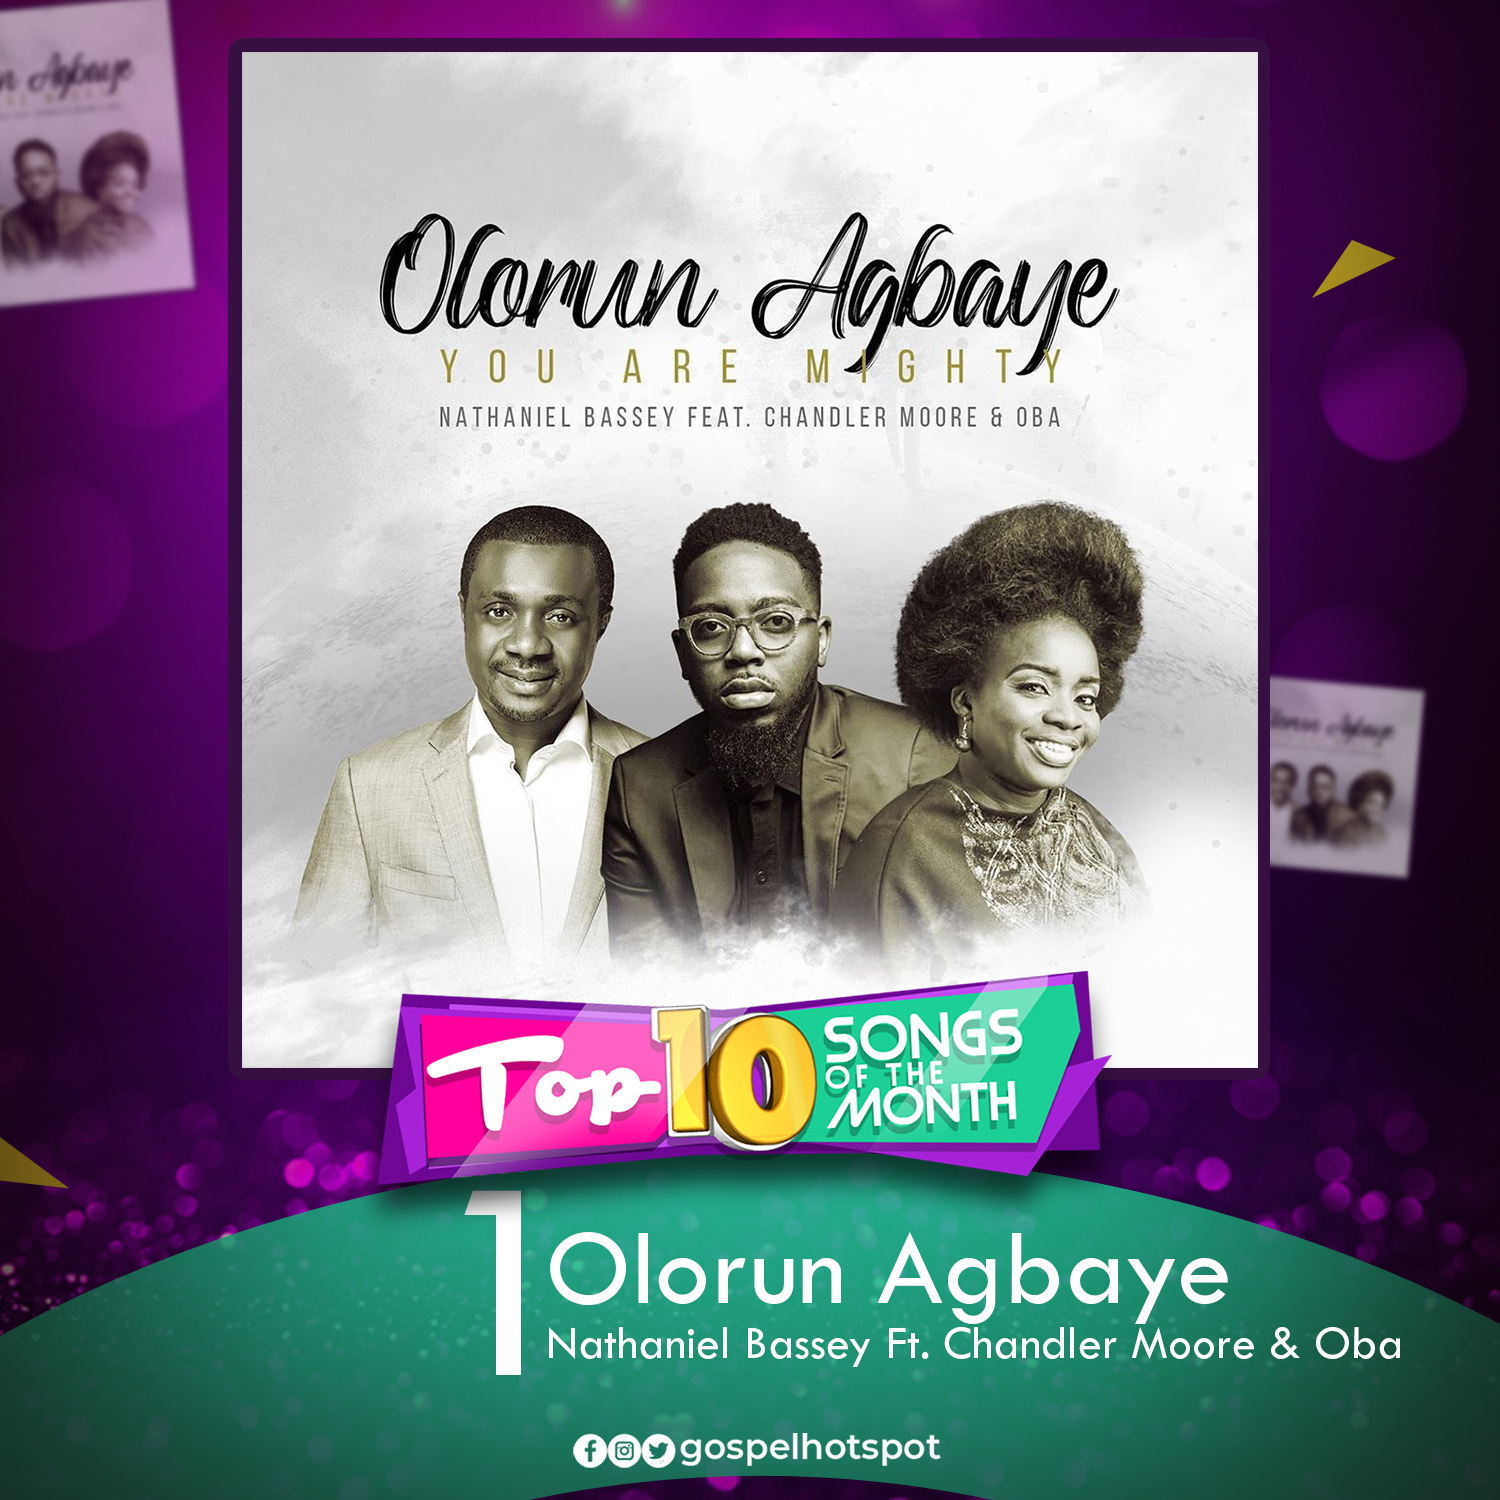 Olorun Agbaye [You Are Mighty] – Nathaniel Bassey Ft. Chandler Moore & Oba